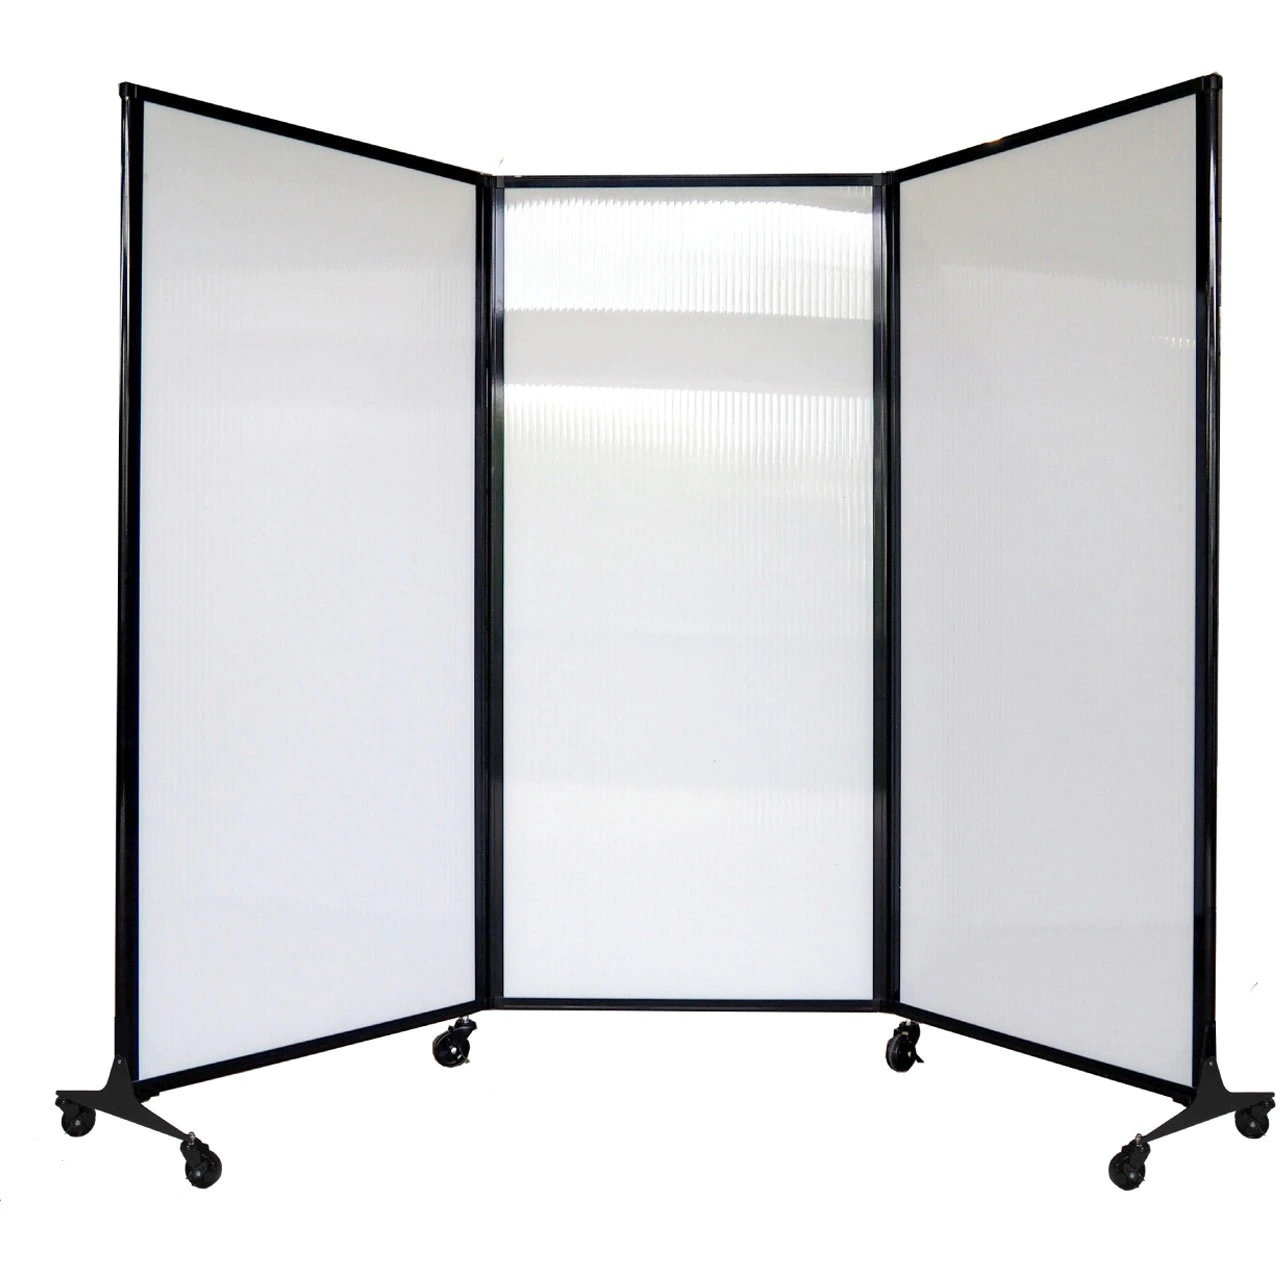 Medi-Wall Quick-Wall (Folding) Portable Partition